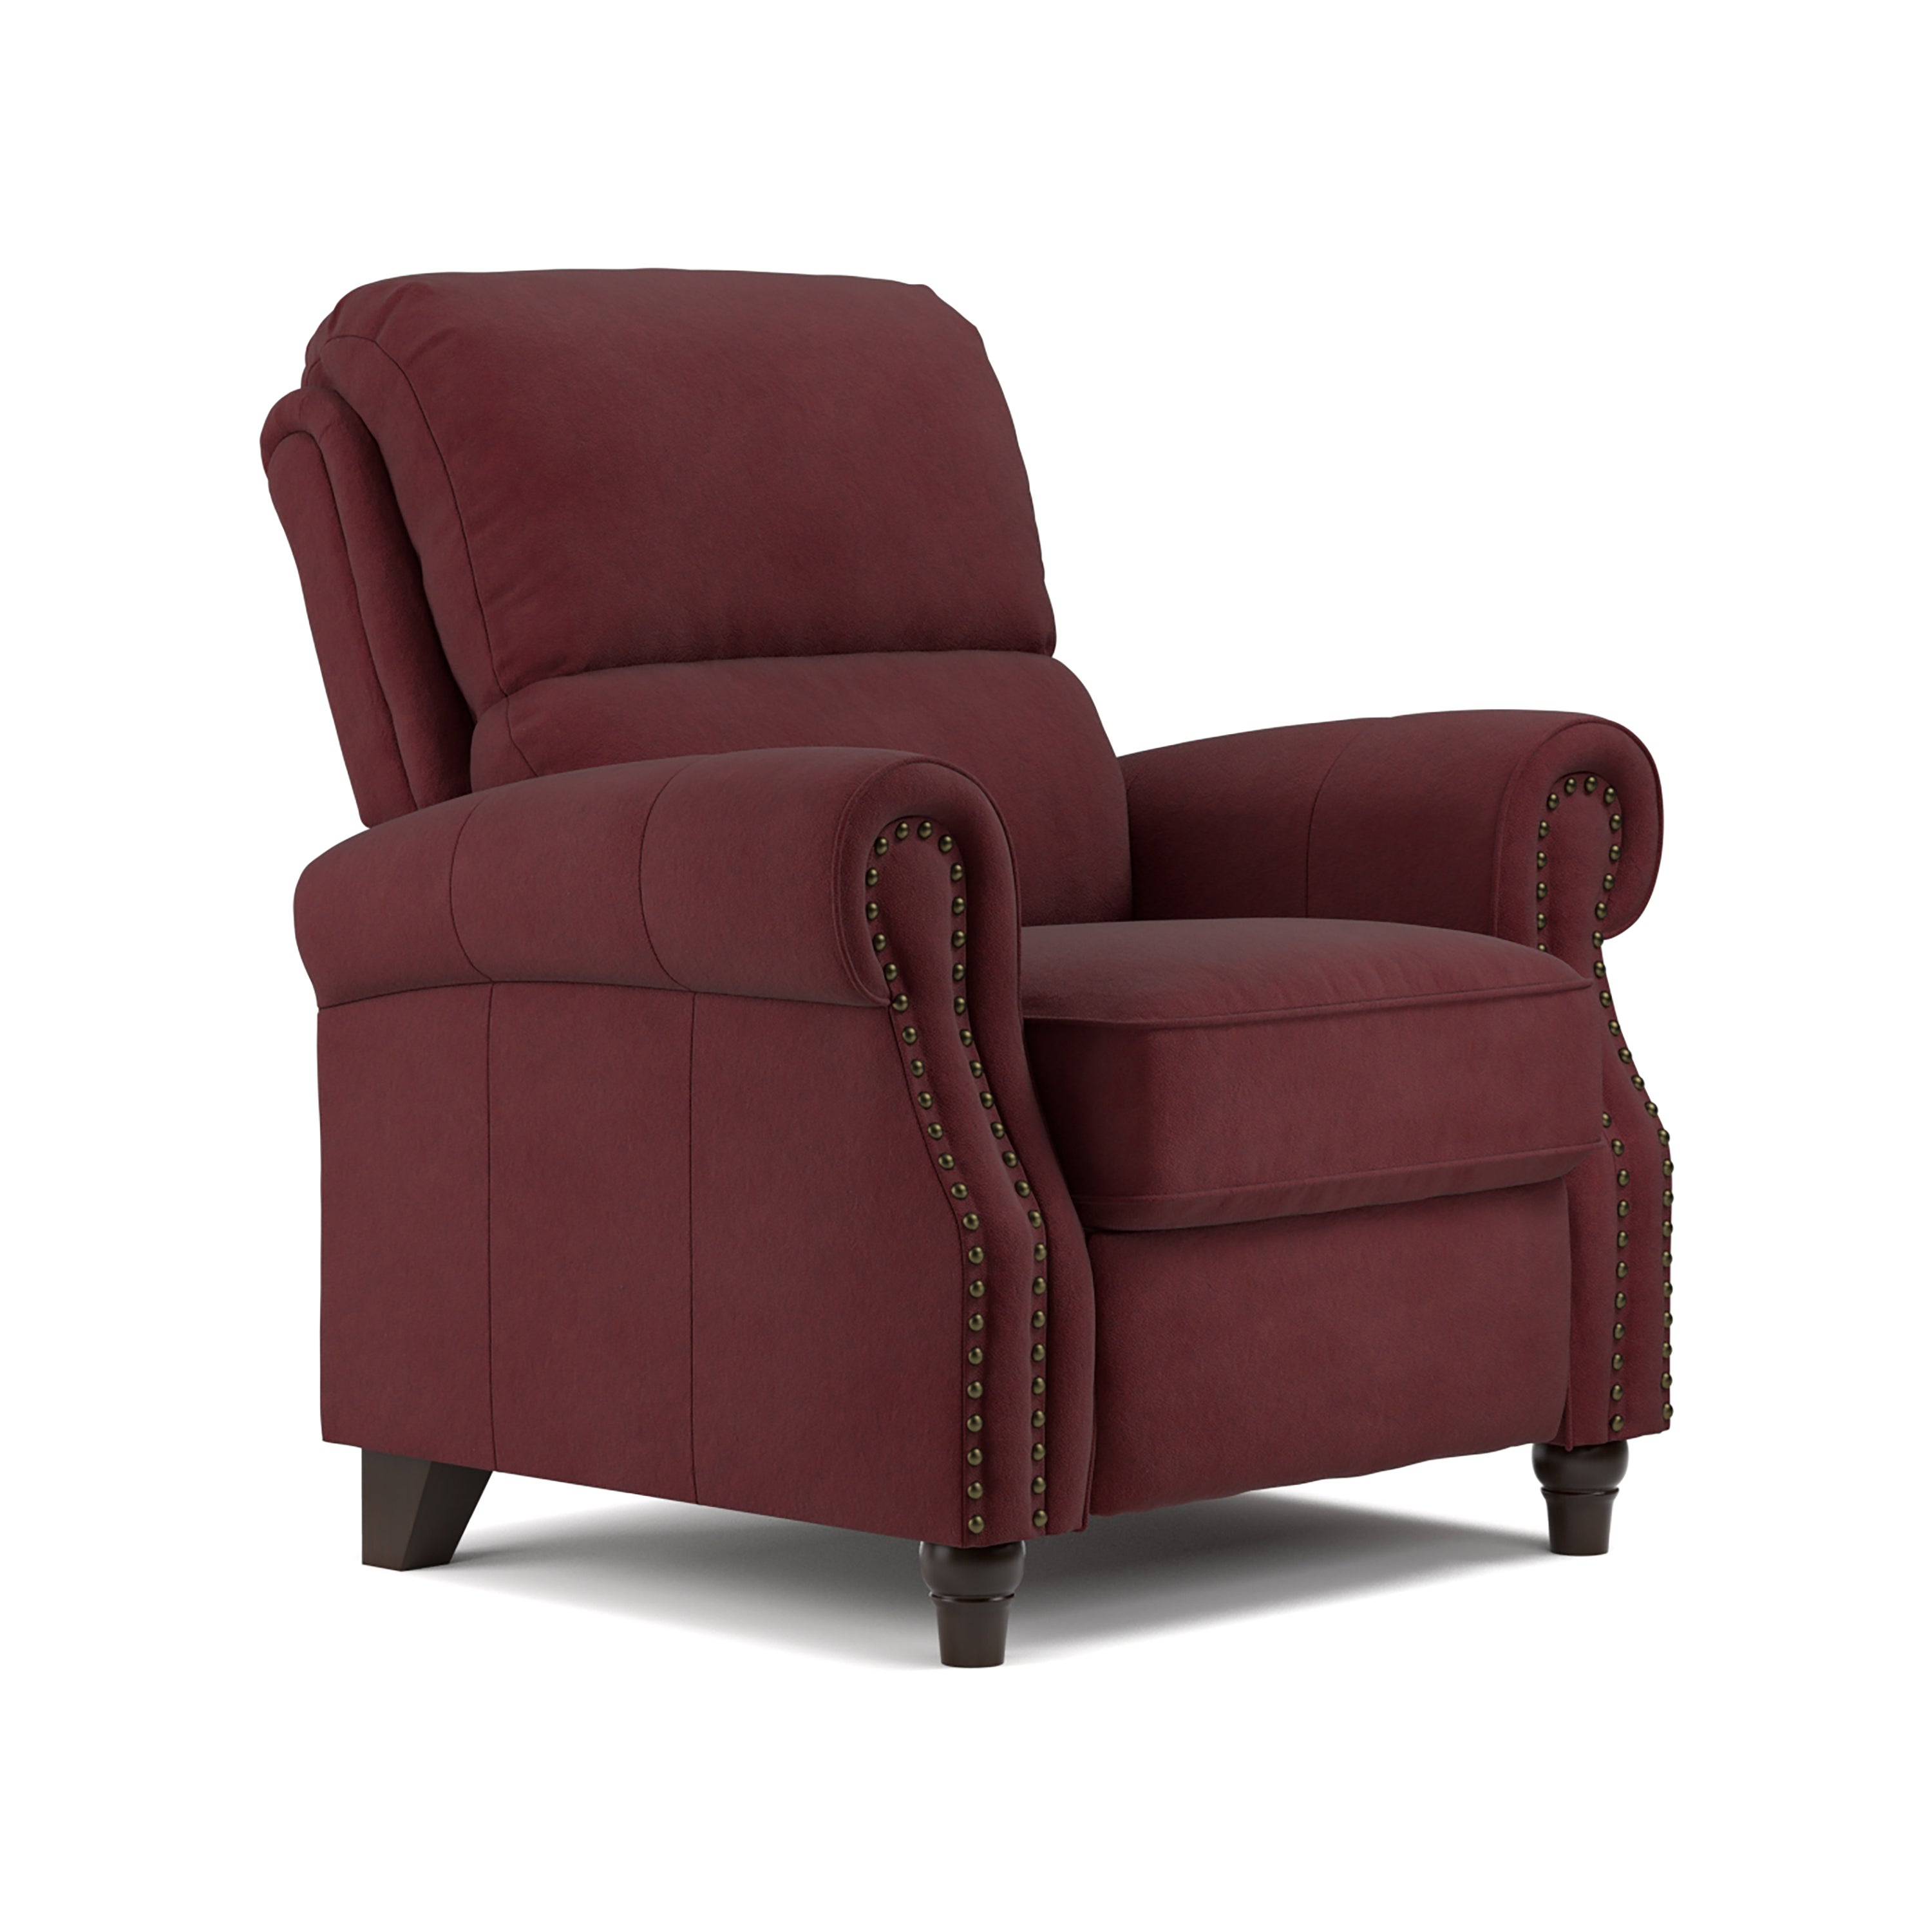 Beau ProLounger Burgundy Red Pebbles Suede Push Back Recliner Chair